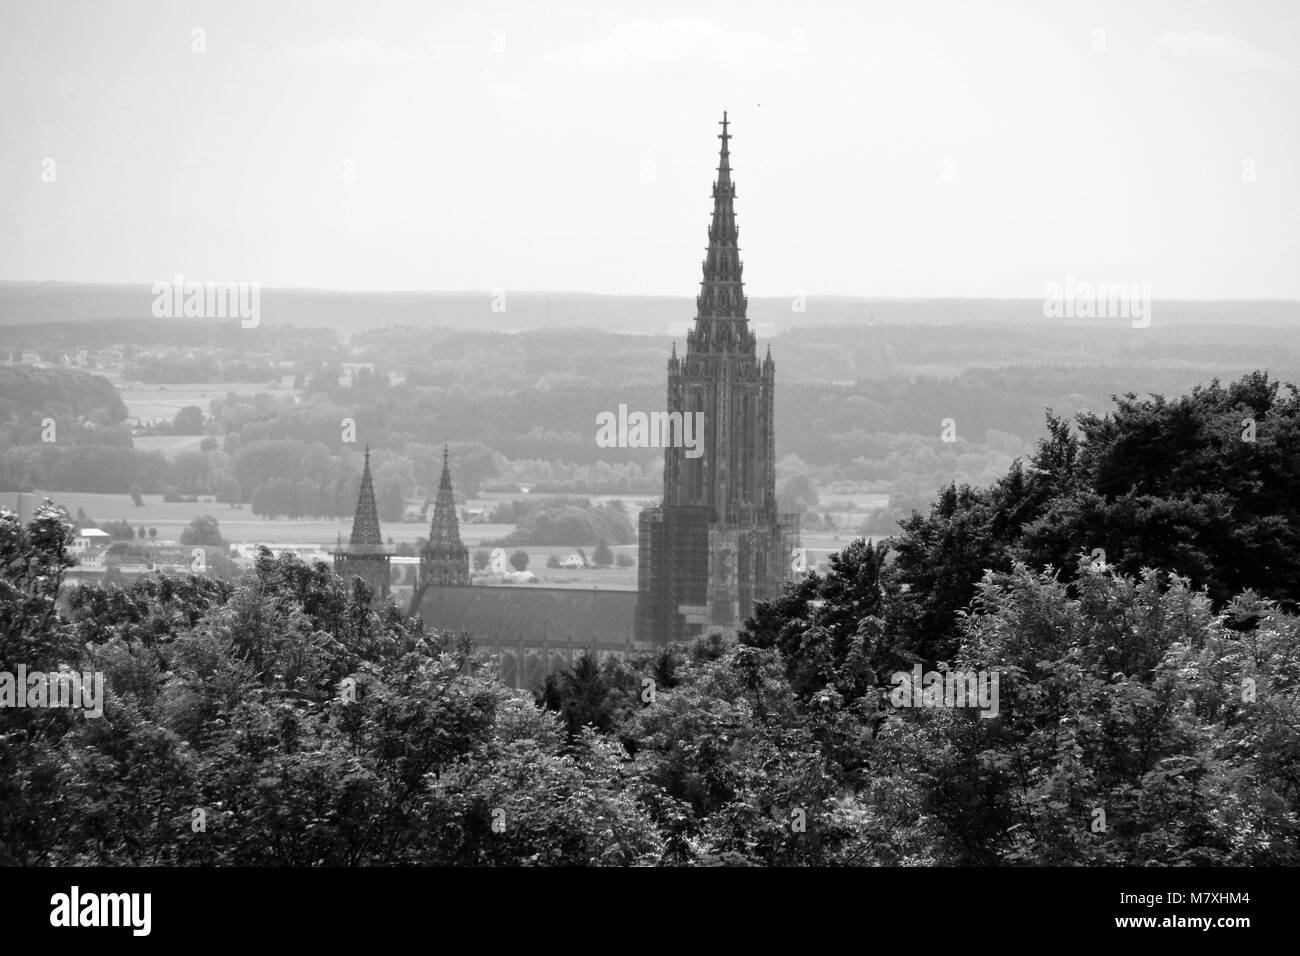 minster of ulm with the highest steeple panorama in a nostalgic black and white look Stock Photo